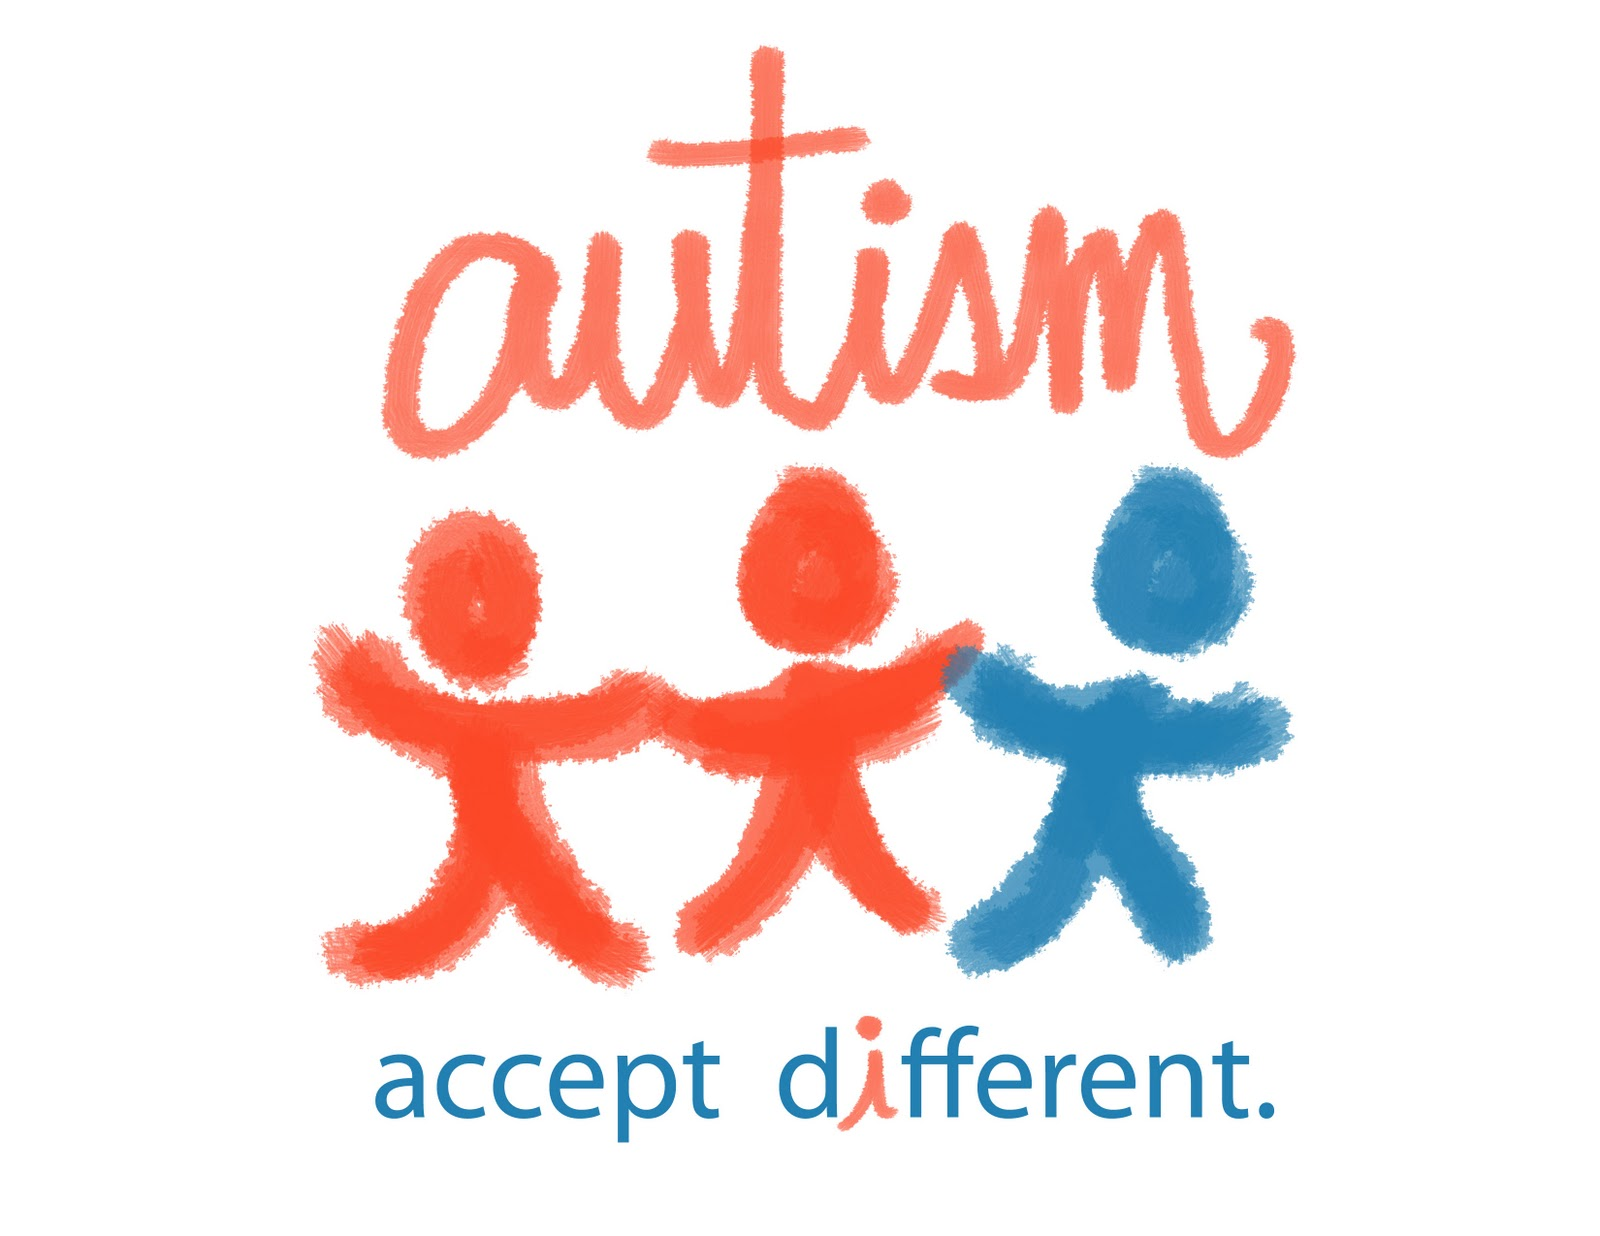 ... skills of persons with autism in our community and around the world